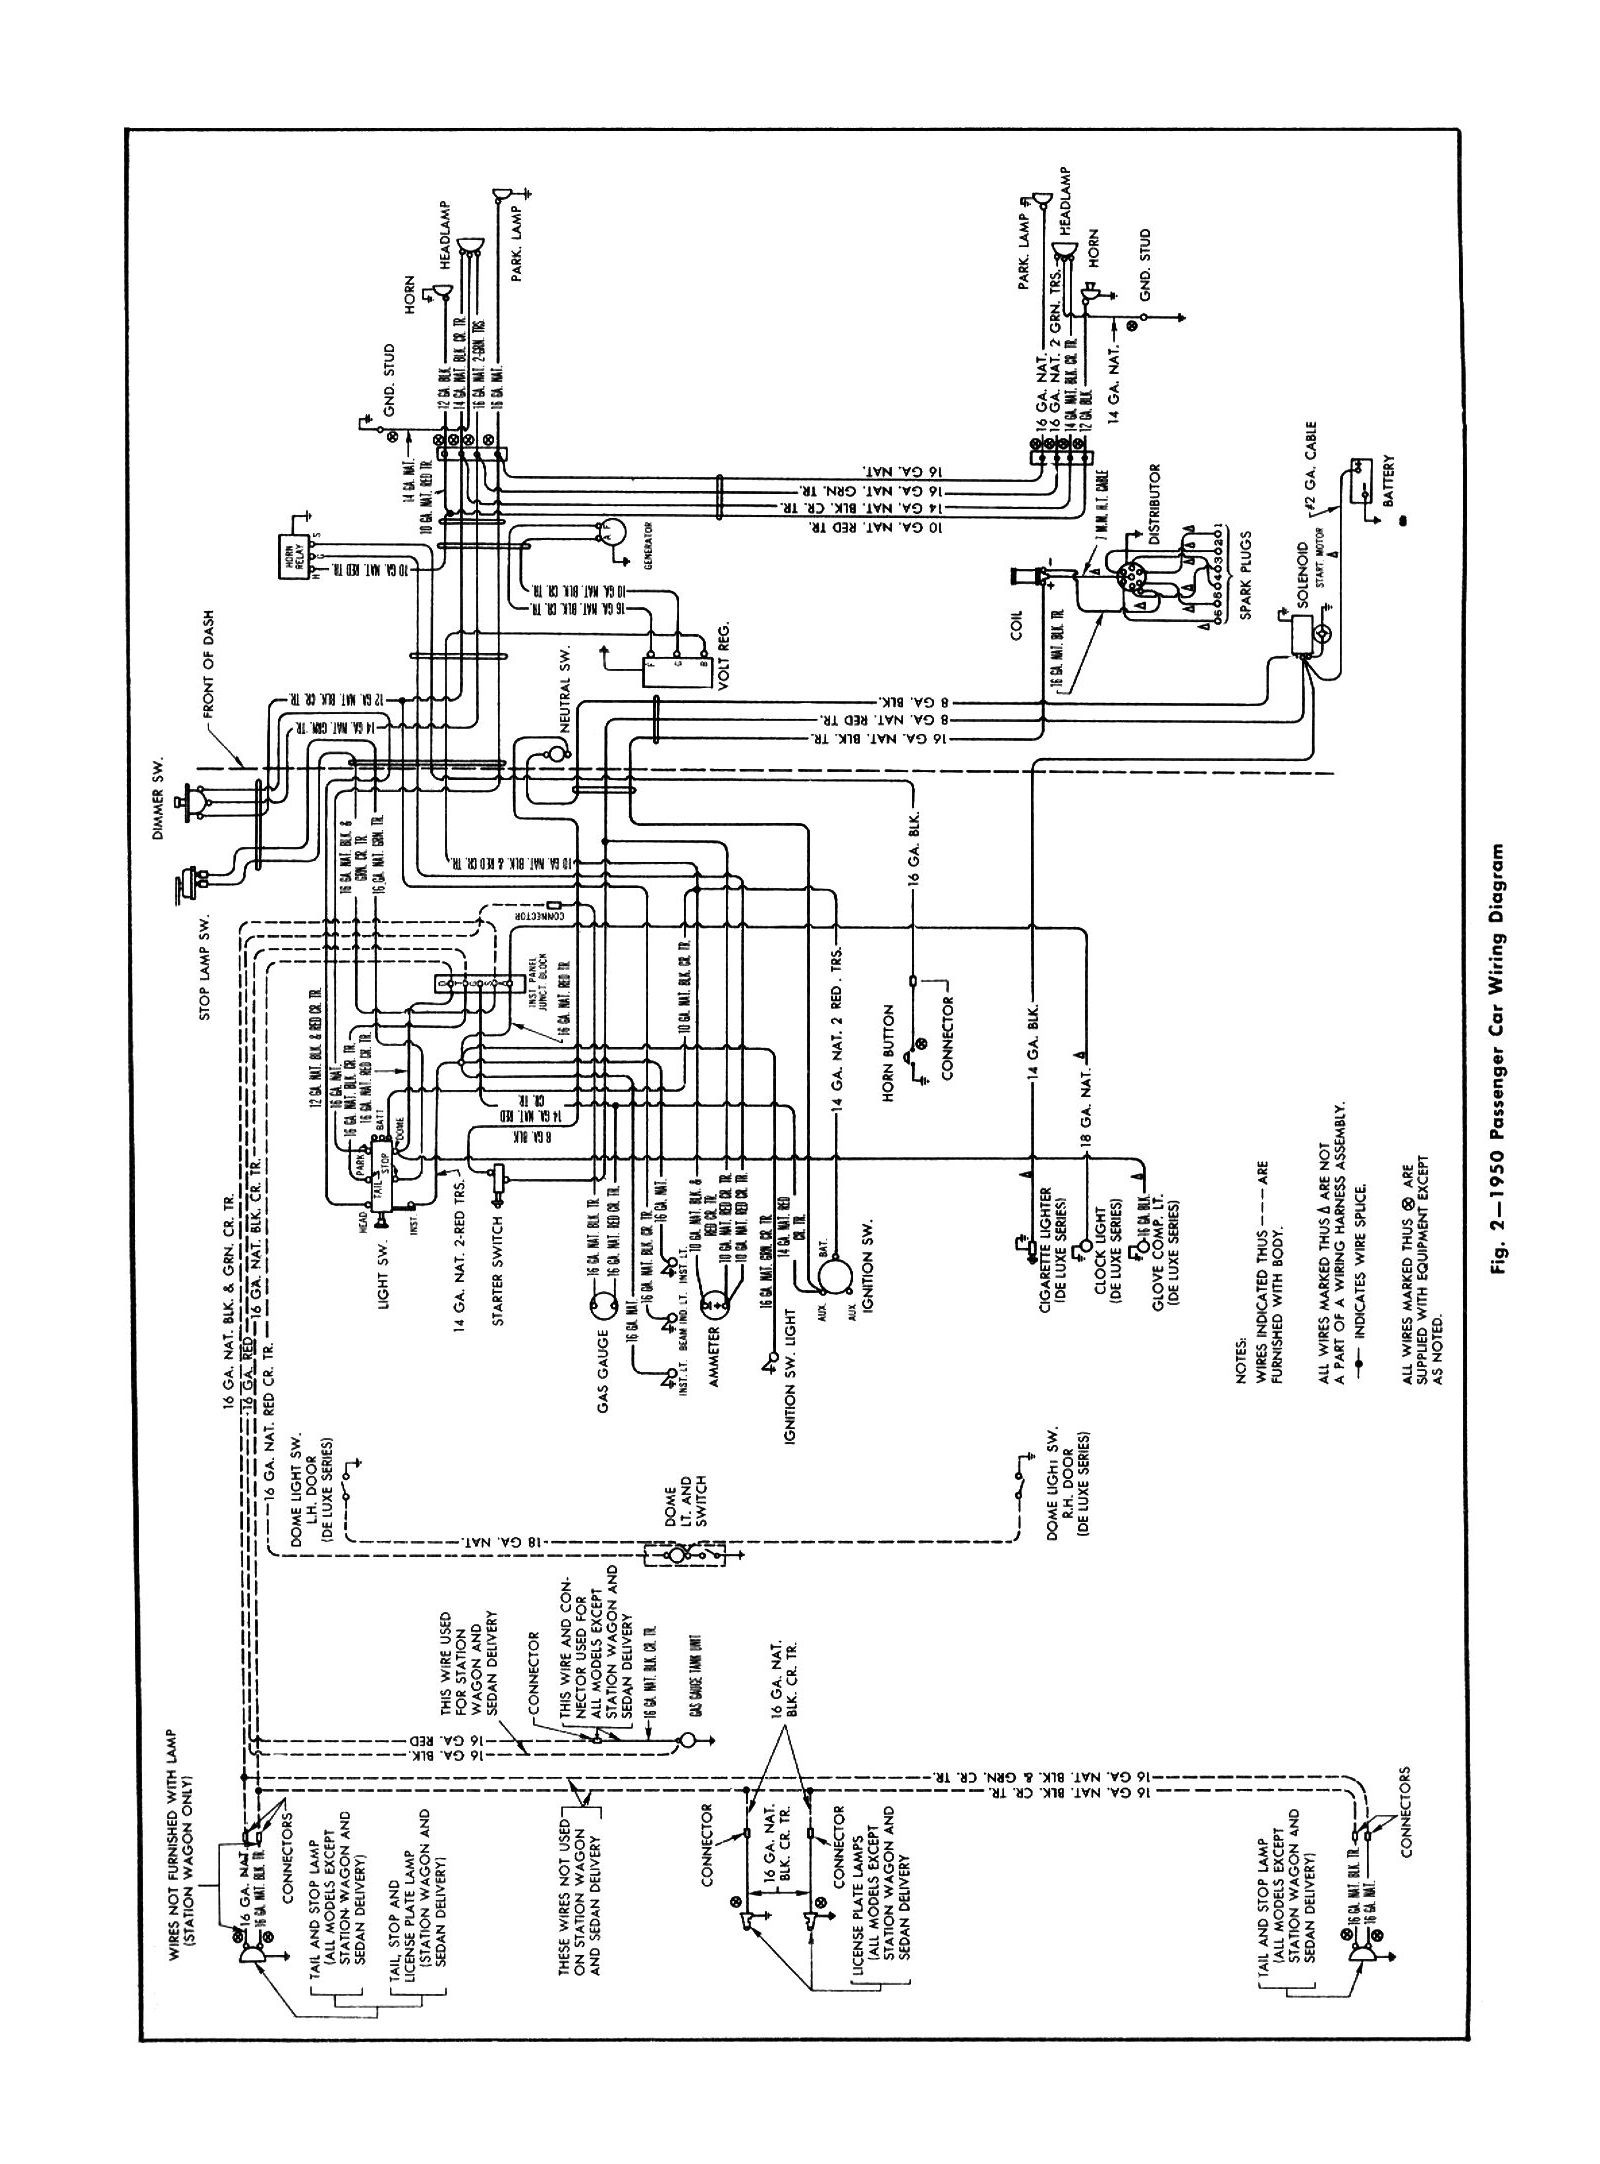 Wiring Diagram For Chevy Pickup Truck